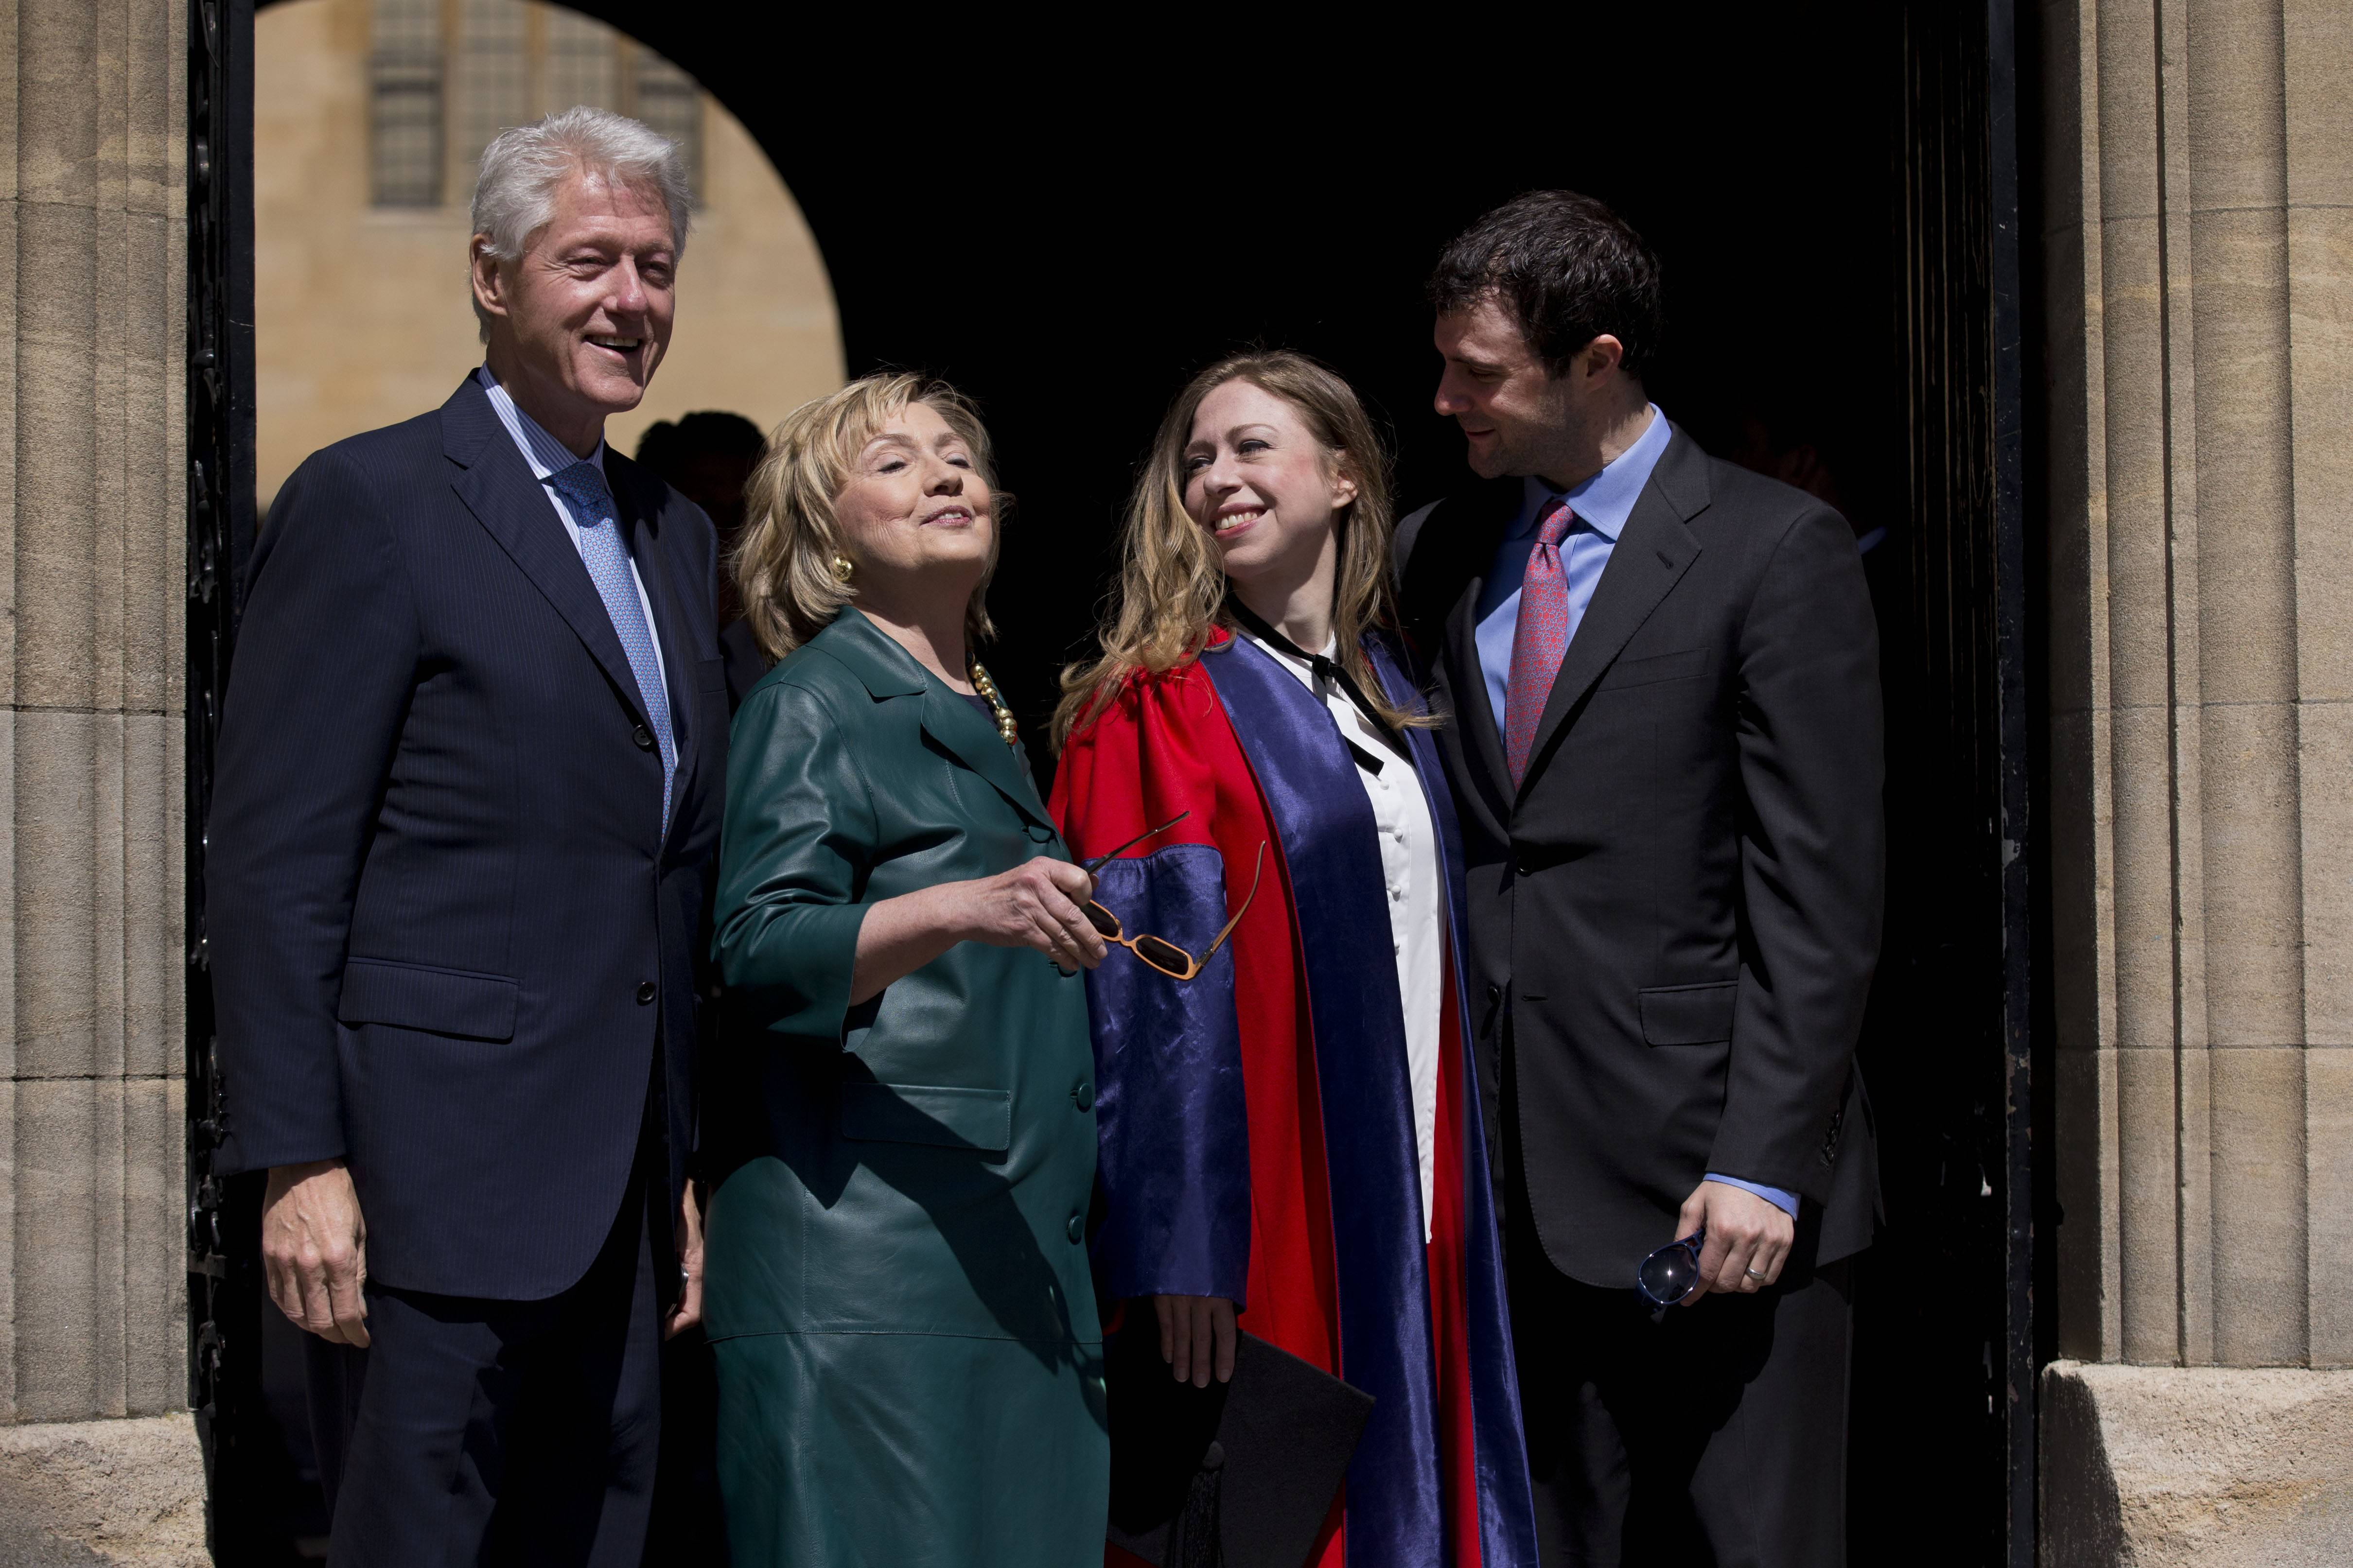 Former U.S. Secretary of State Hillary Rodham Clinton, second left, takes off her sunglasses Saturday to pose for a group photograph with her husband former President Bill Clinton, left, their daughter Chelsea, second right, and her husband Marc Mezvinsky, as they leave after attending Chelsea's Oxford University graduation ceremony at the Sheldonian Theatre in Oxford, England.